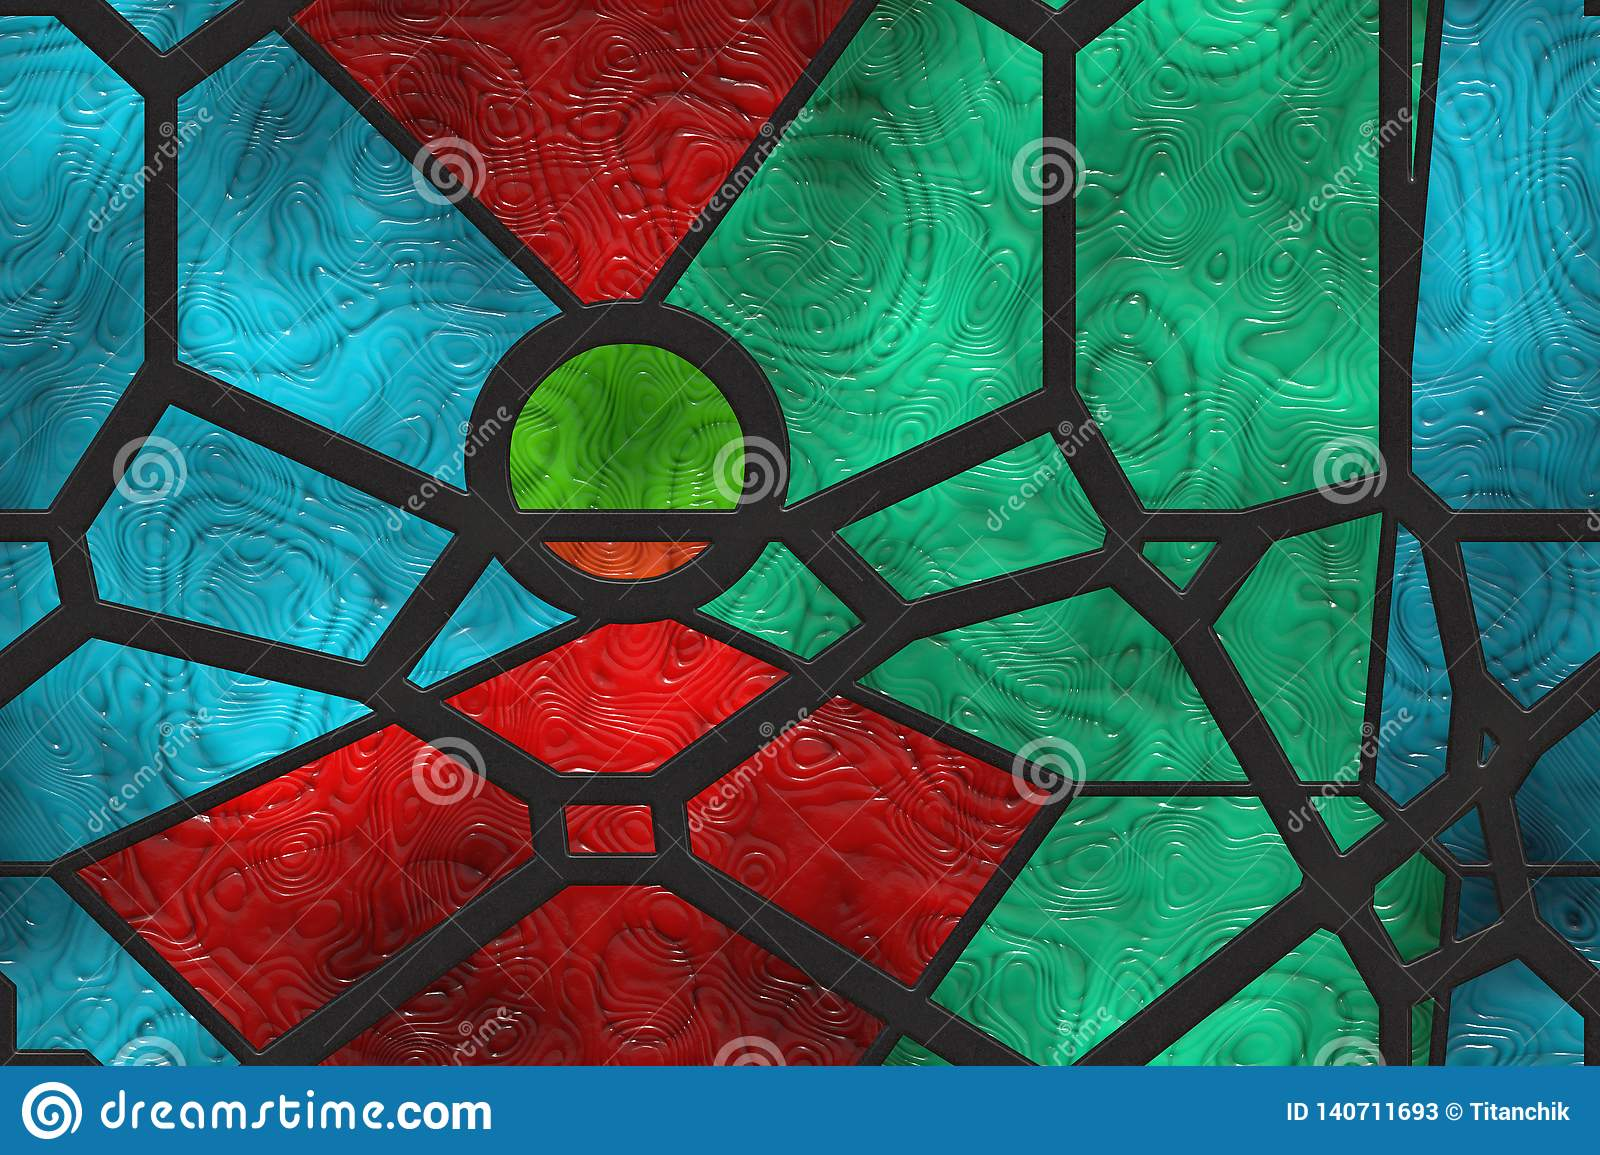 Creative Window Stained Glass Wall Metal Grate Stock